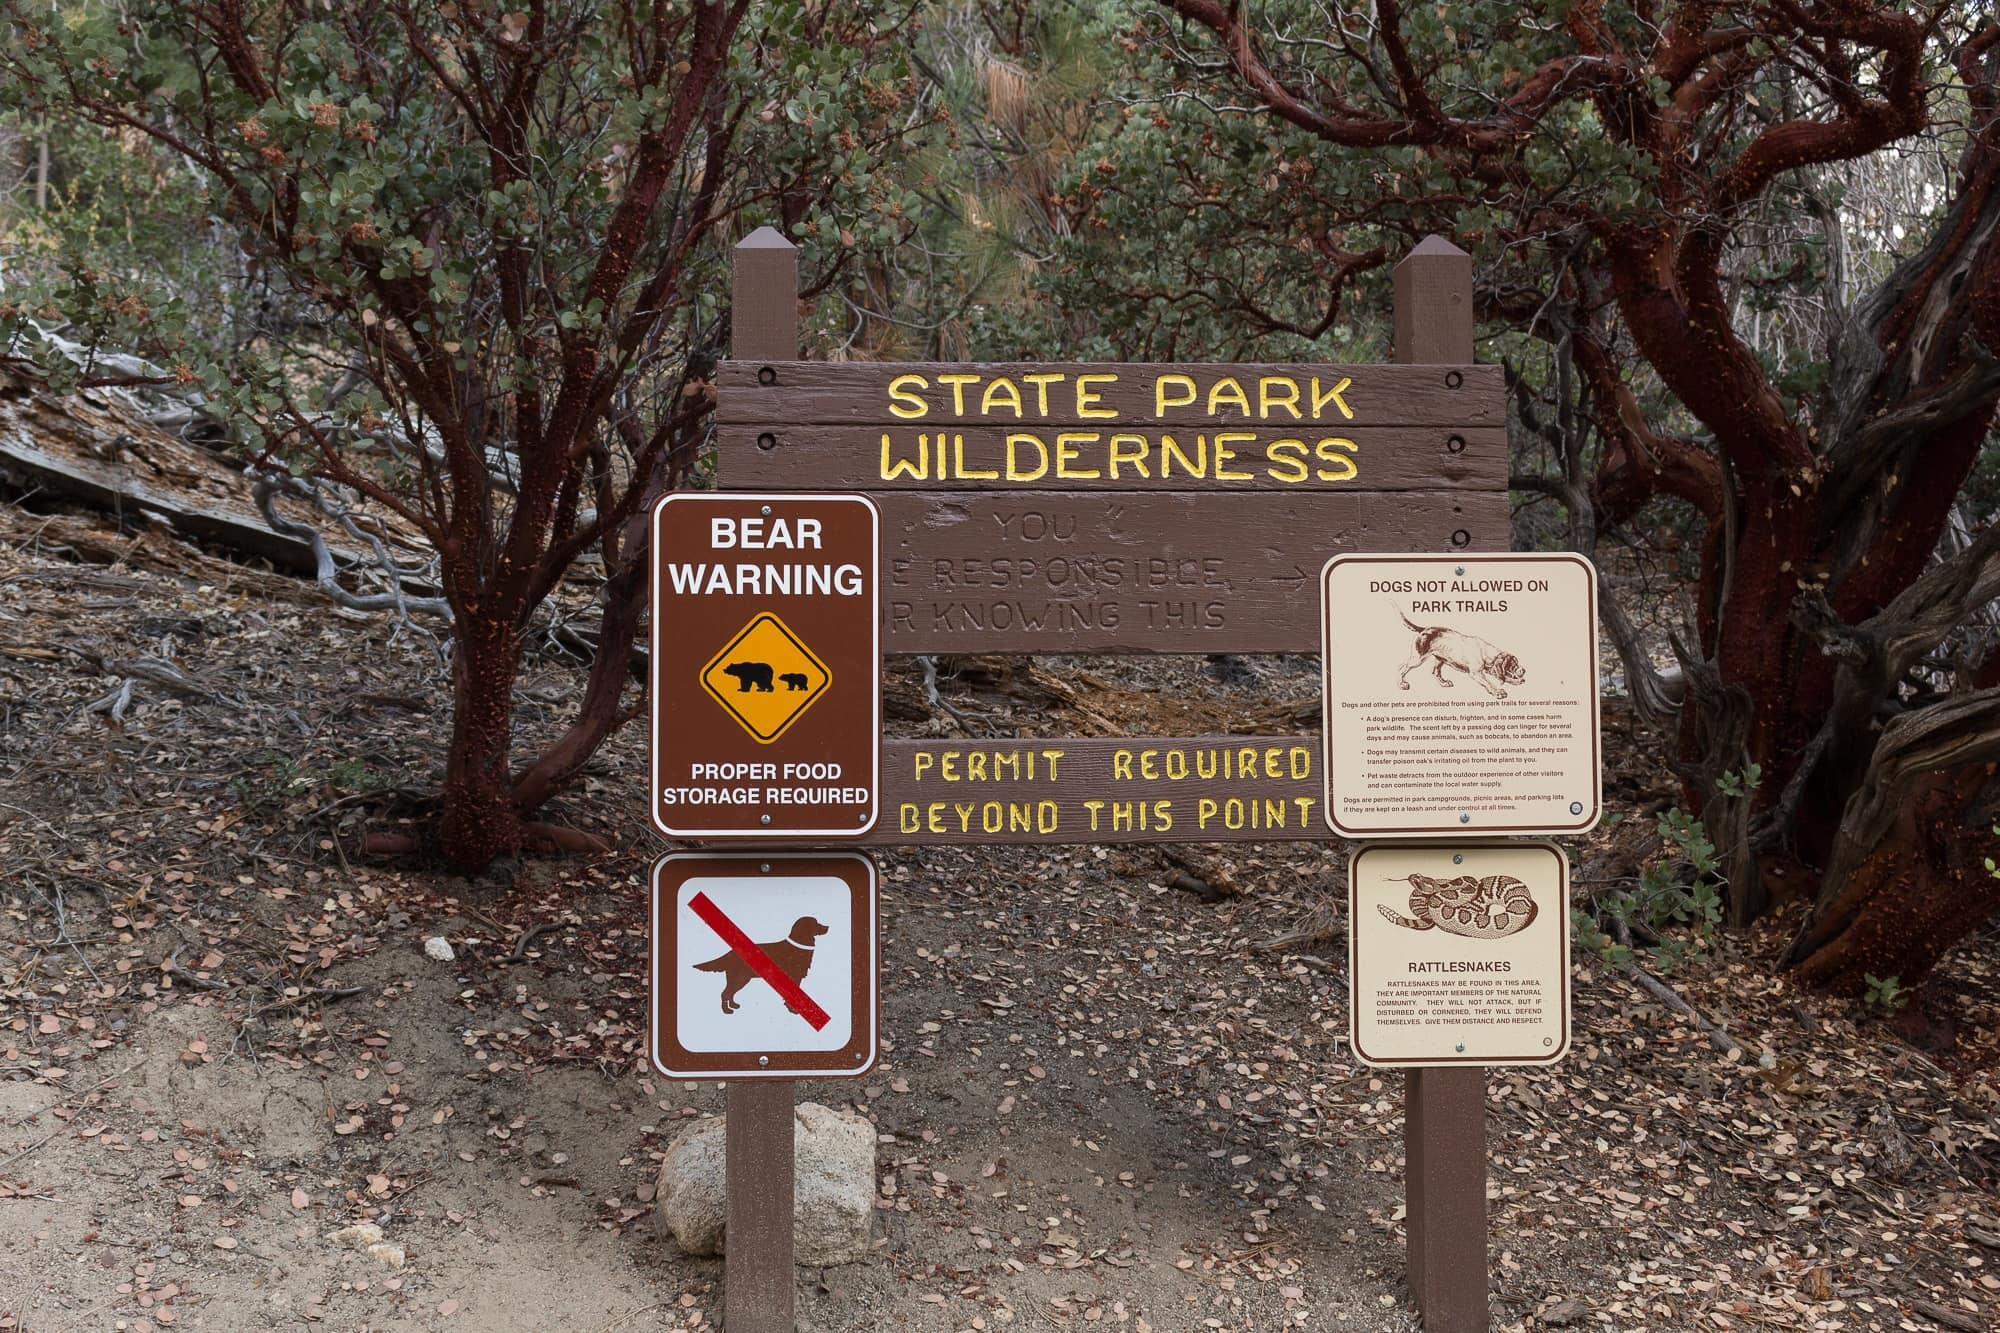 Get all the info you need for backpacking the San Jacinto Peak Loop Trail, the most scenic route to summit San Jacinto Peak.